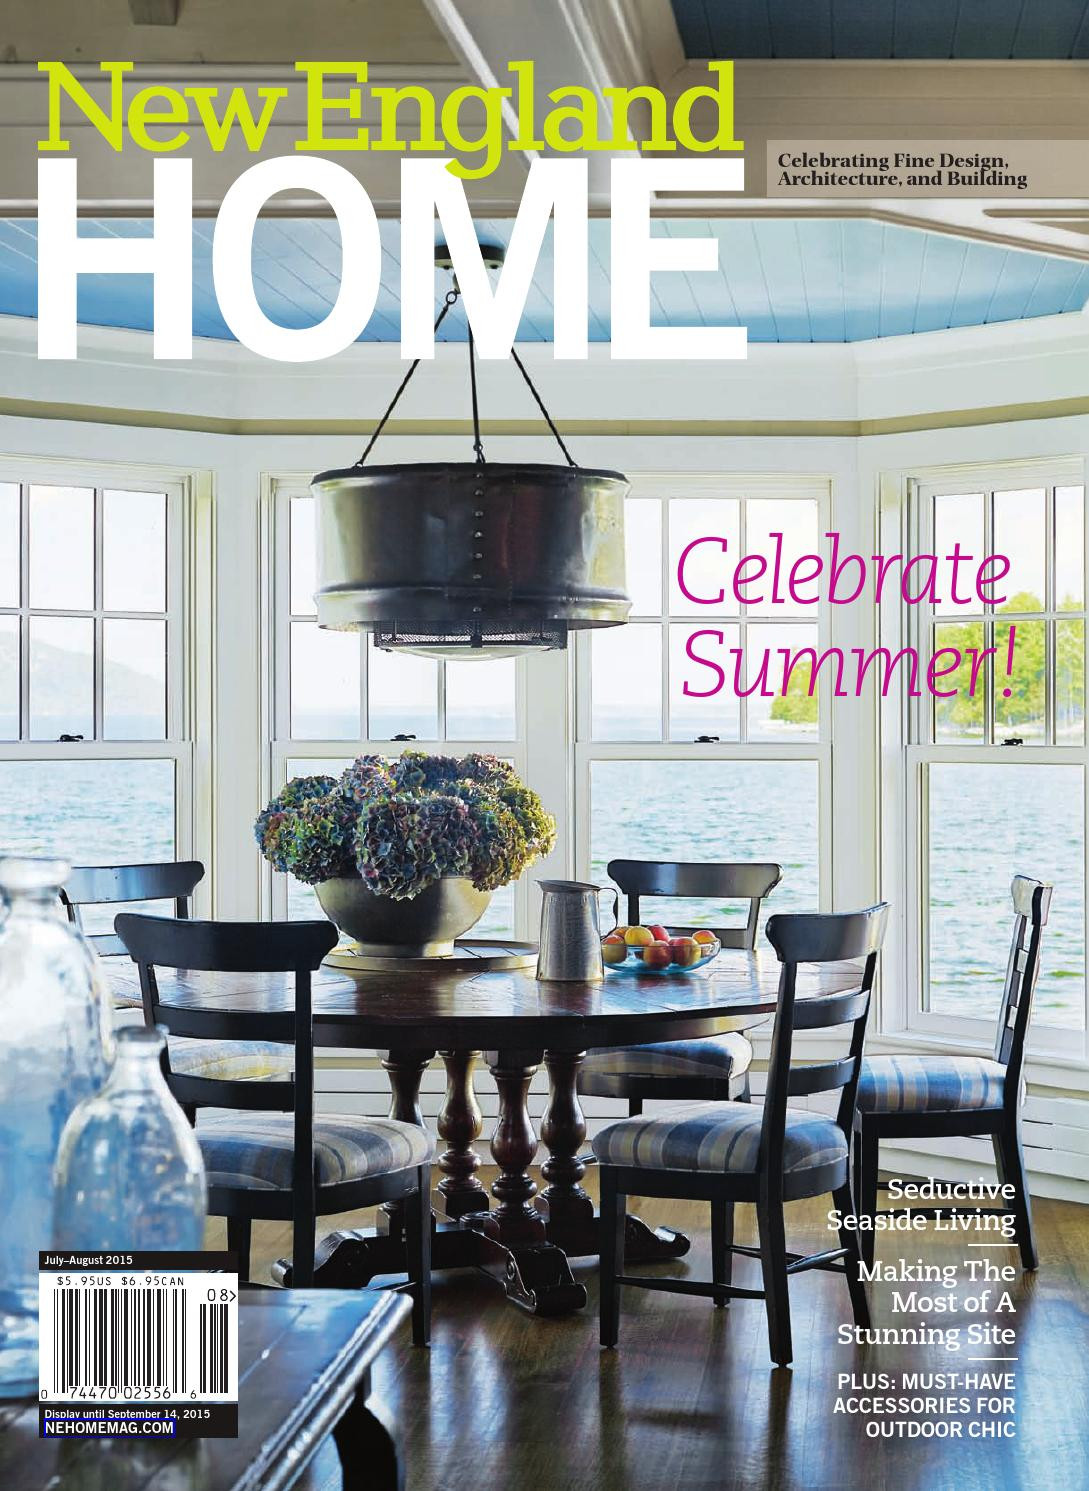 ac moore glass vases of new england home july august 2015 by new england home magazine llc in new england home july august 2015 by new england home magazine llc issuu